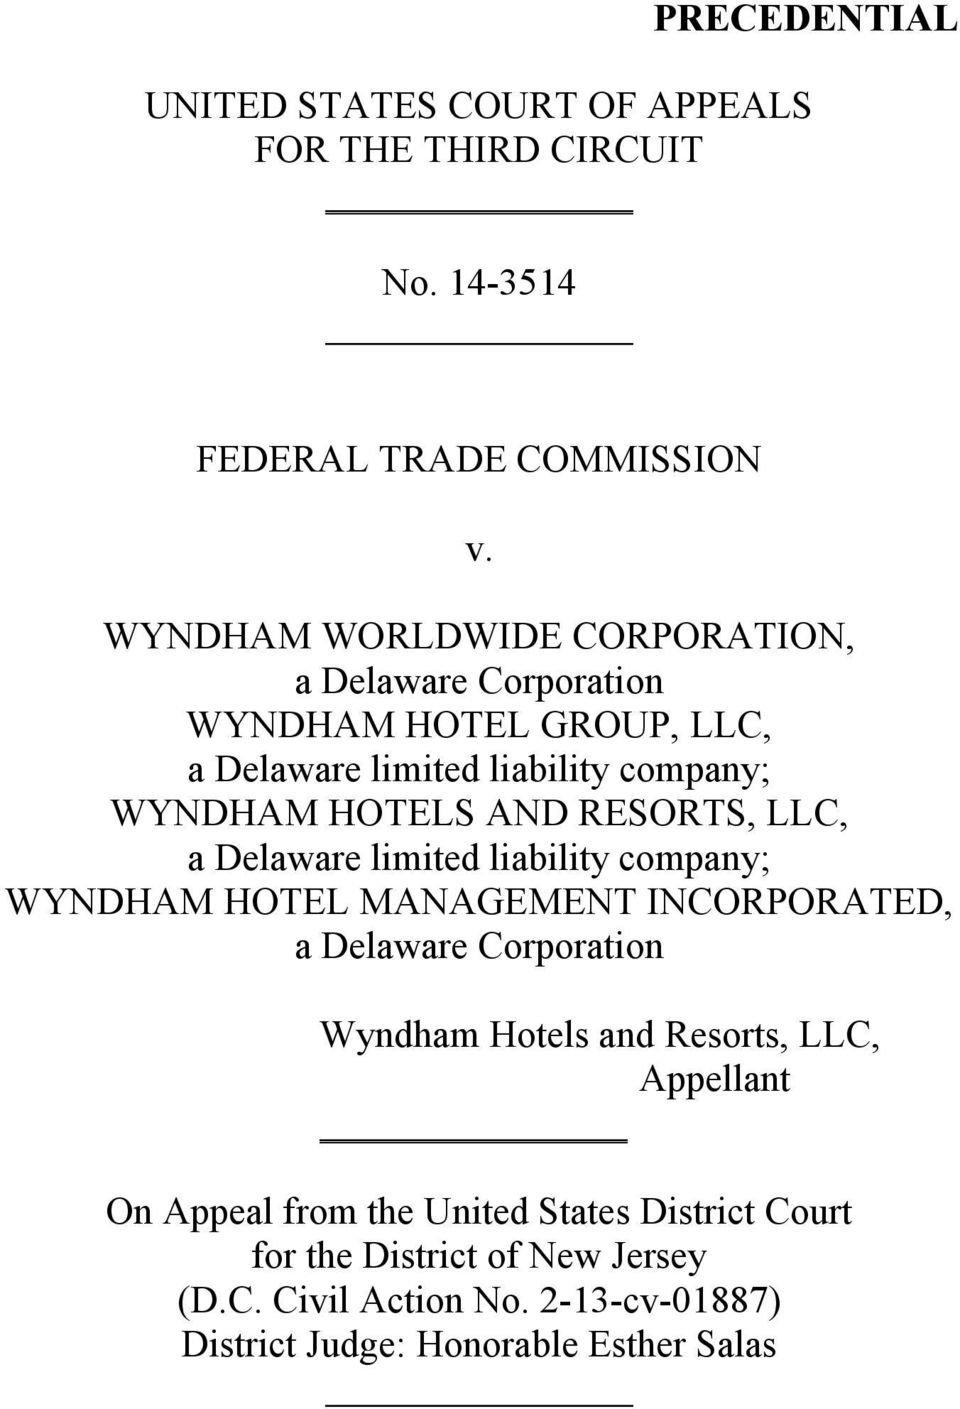 RESORTS, LLC, a Delaware limited liability company; WYNDHAM HOTEL MANAGEMENT INCORPORATED, a Delaware Corporation Wyndham Hotels and